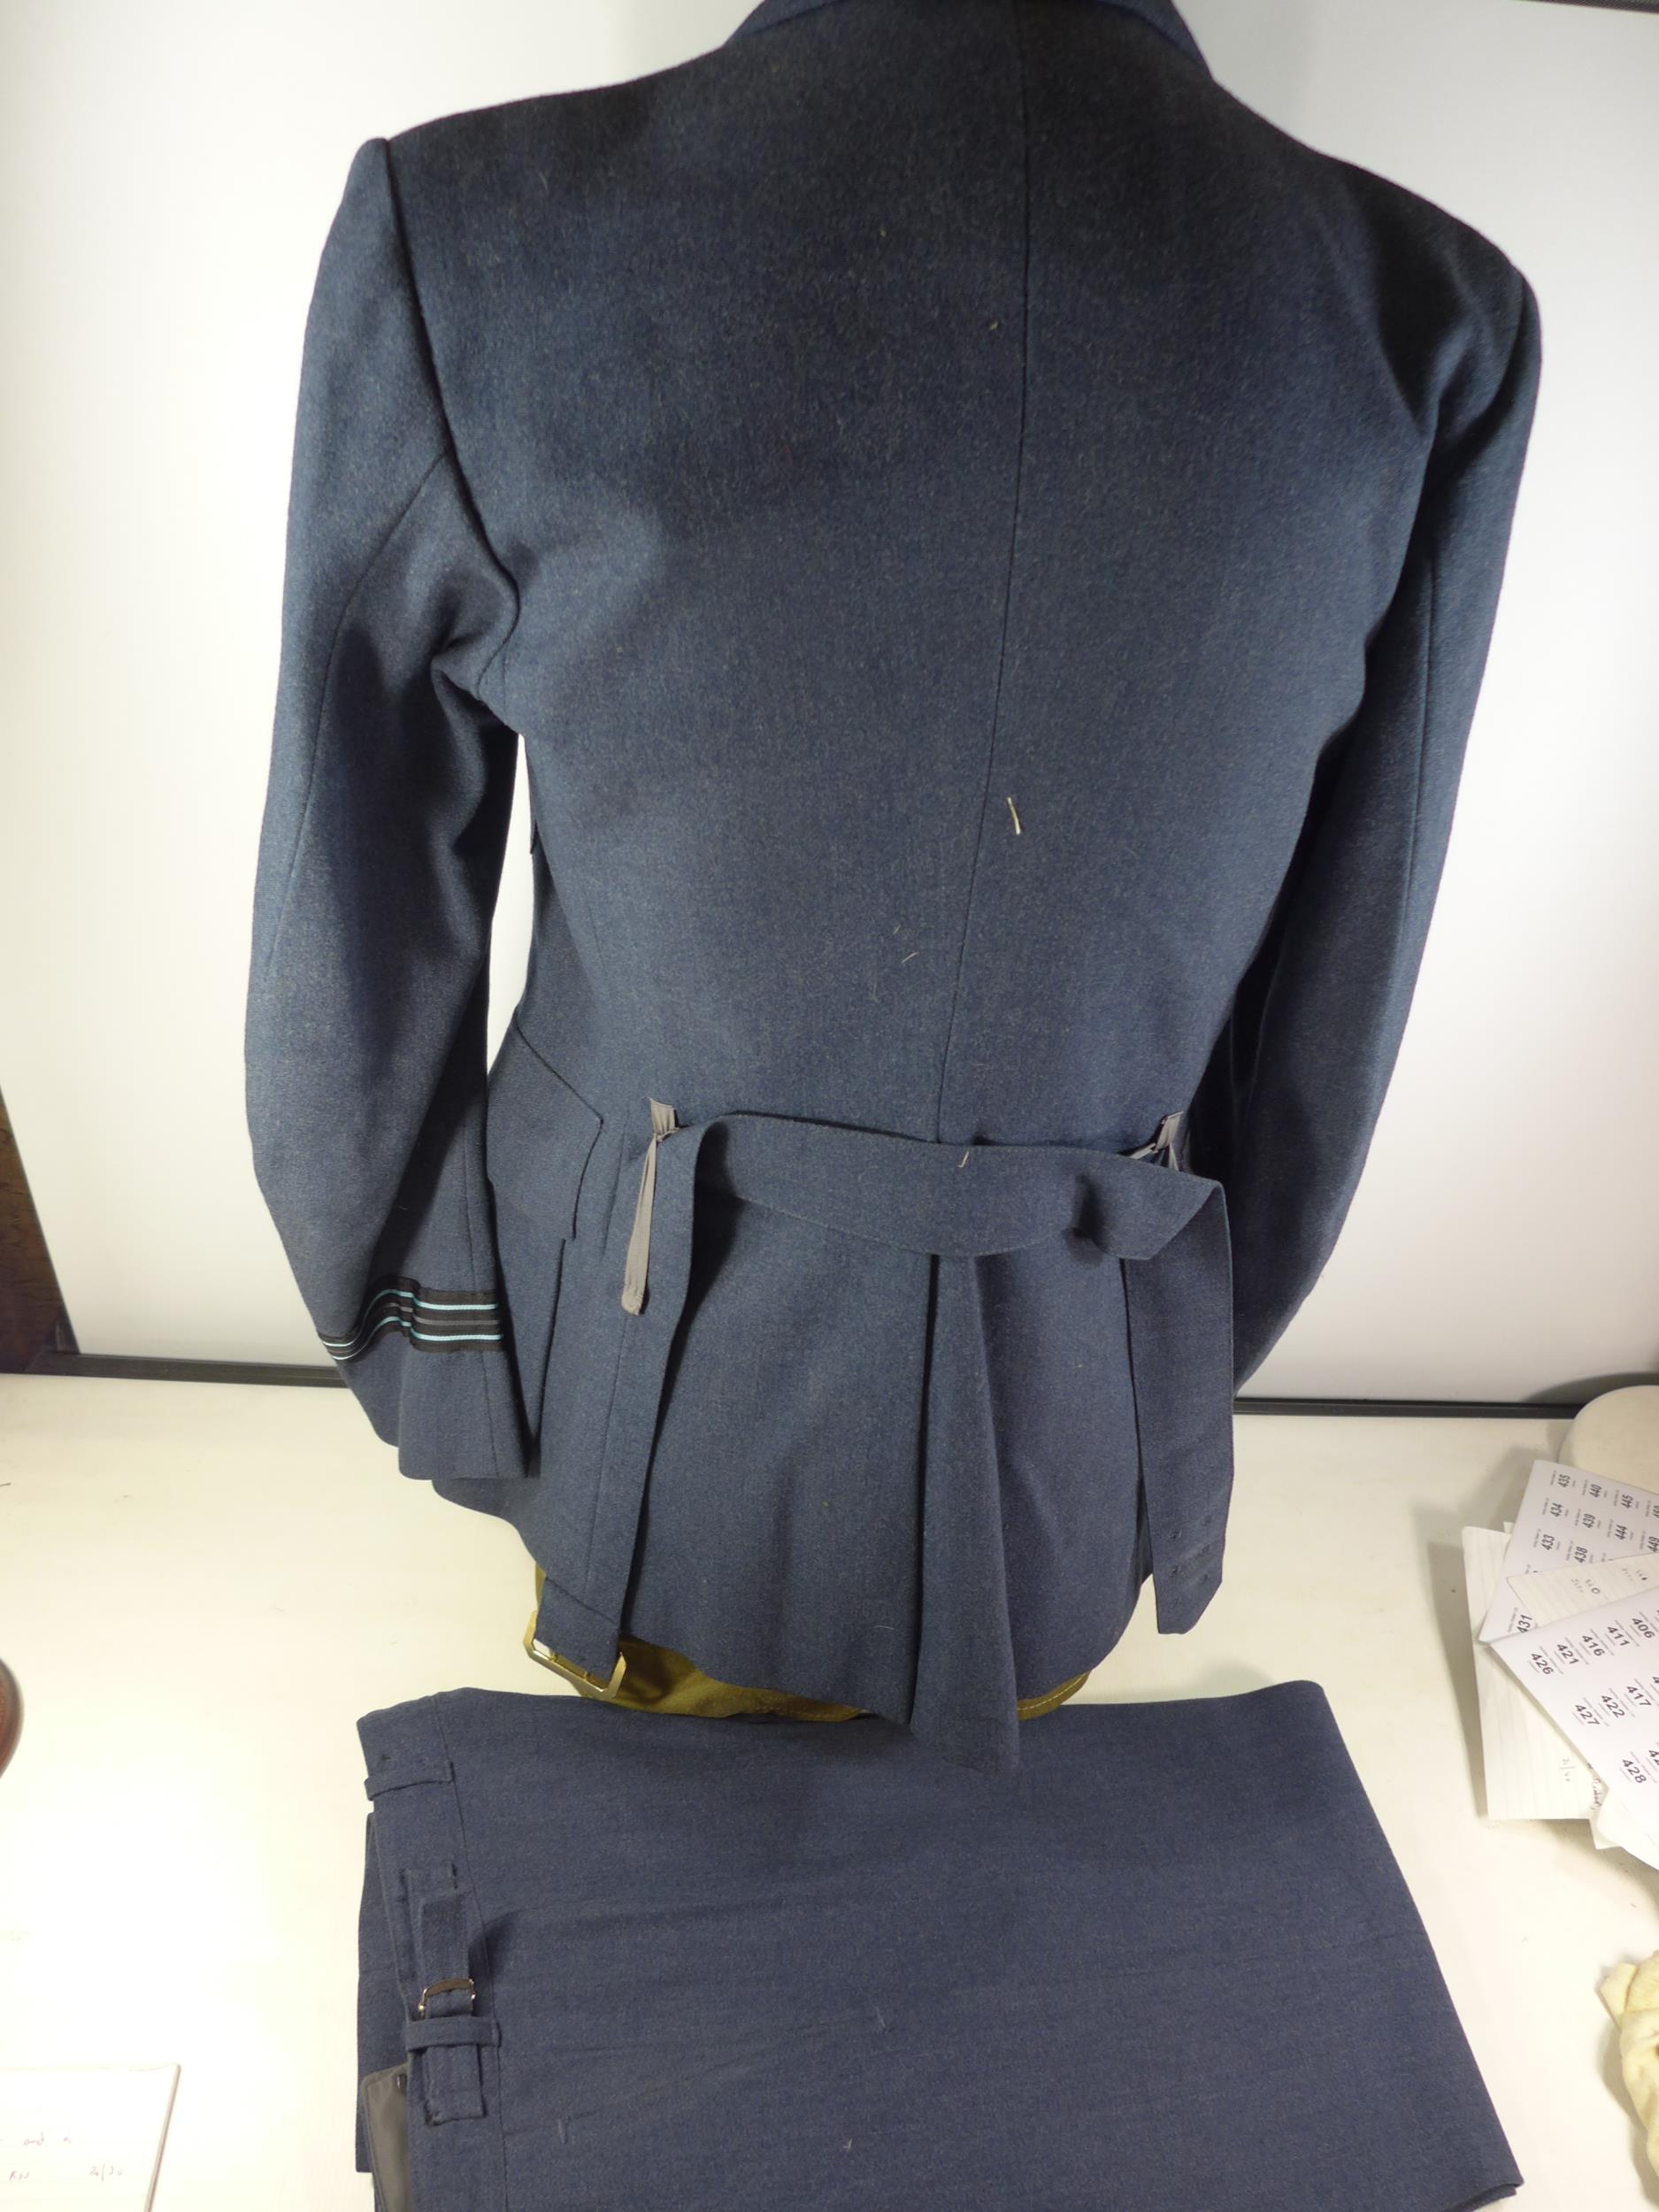 A RAF NO.1 DRESS WARRANT OFFICERS UNIFORM COMPRISING OF A JACKET AND TROUSERS, SEE IMAGE FOR SIZE - Image 2 of 3